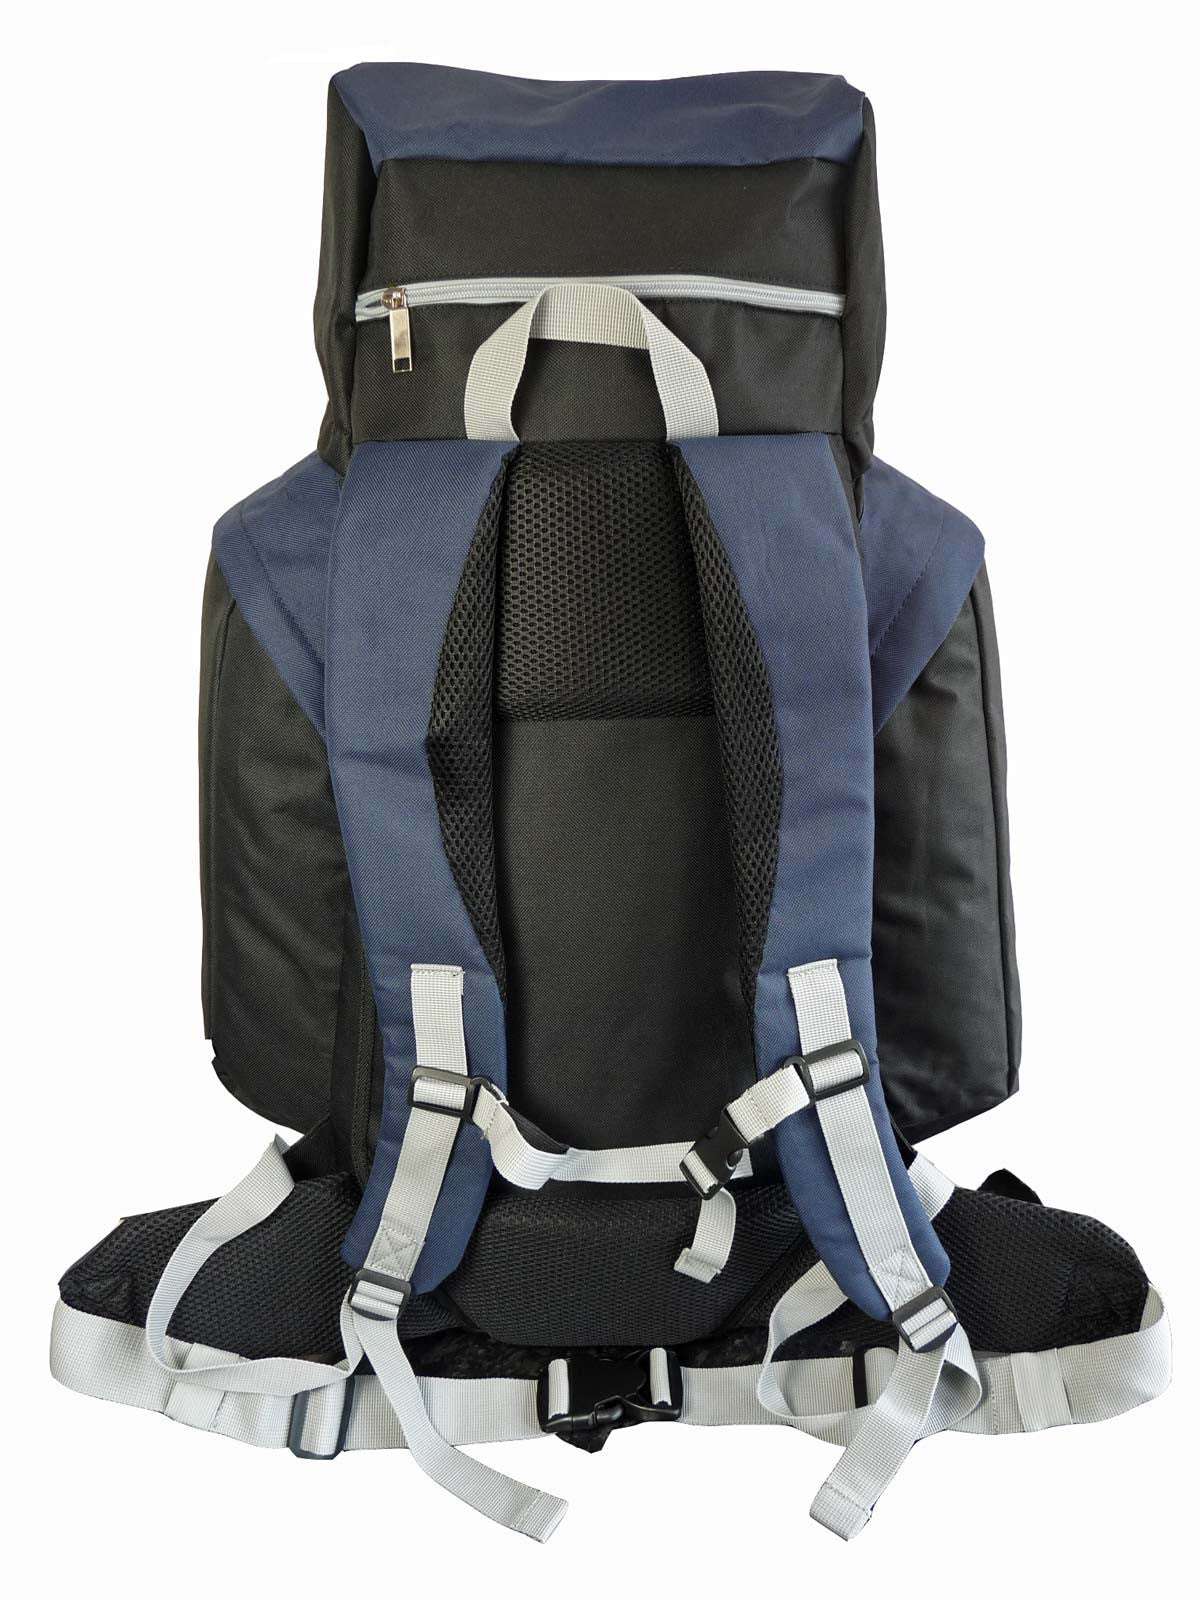 80 100 125 litre backpack blue rear view